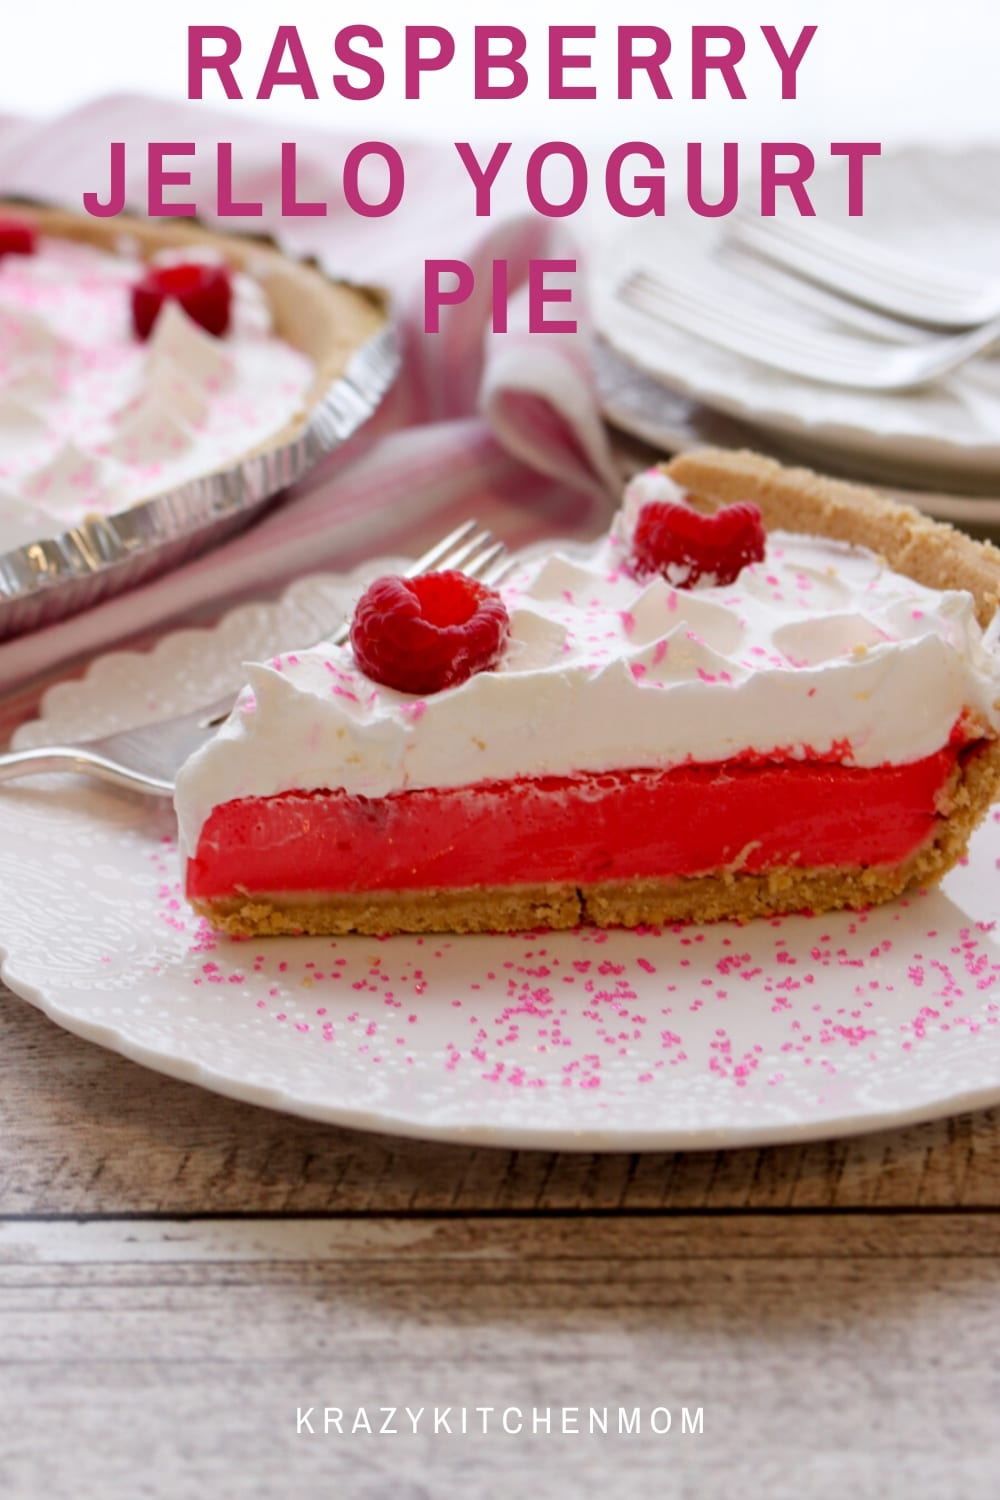 Raspberry Jello Yogurt Pie is the easiest pie you will ever make. Jello, water, and Greek yogurt are all you need to make the creamy smooth thick filling.  via @krazykitchenmom